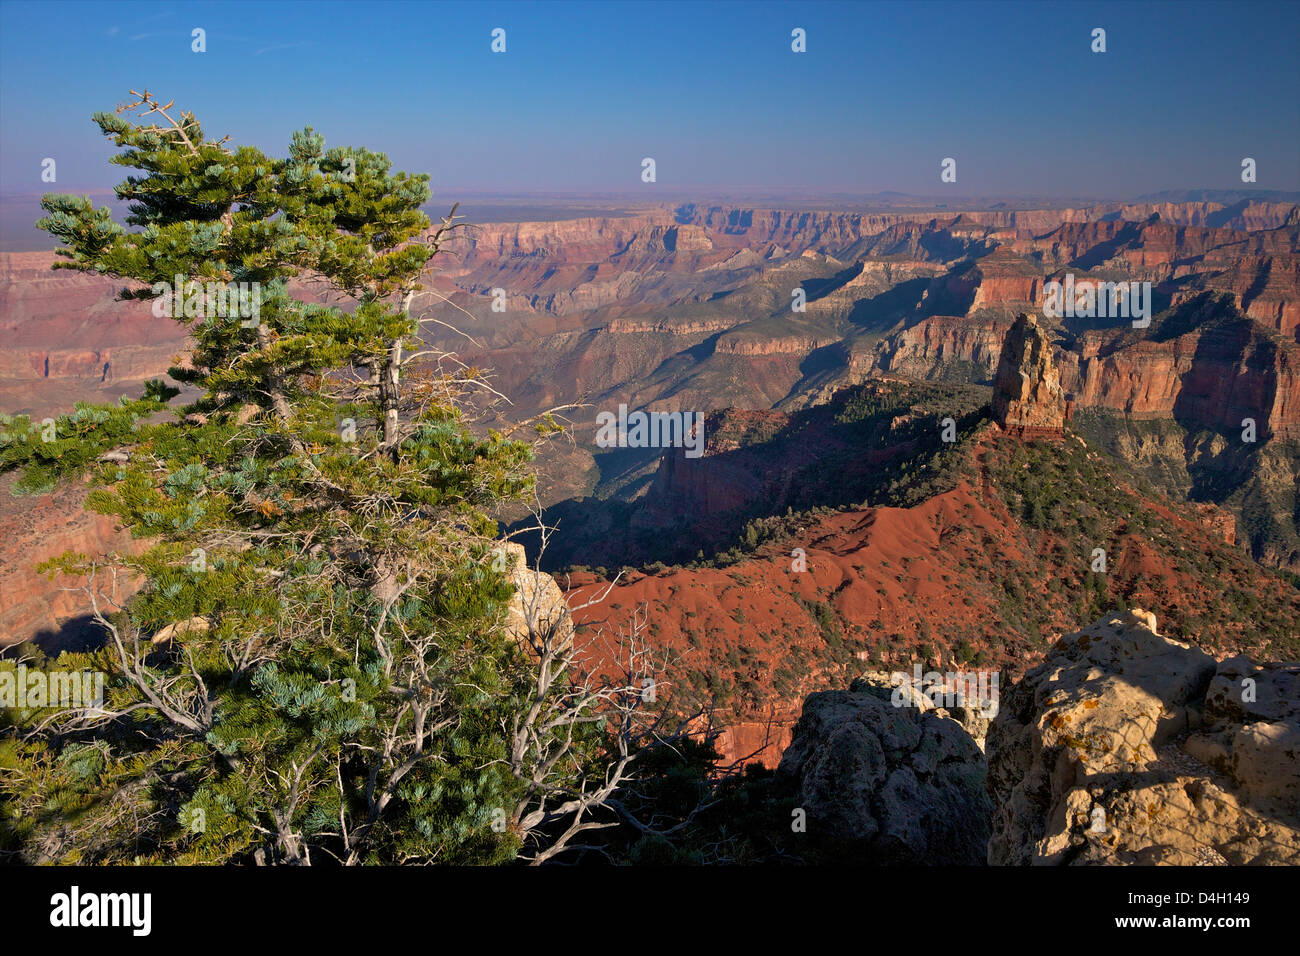 Southeast view, North Rim, Grand Canyon National Park, UNESCO World Heritage Site, Arizona, USA - Stock Image